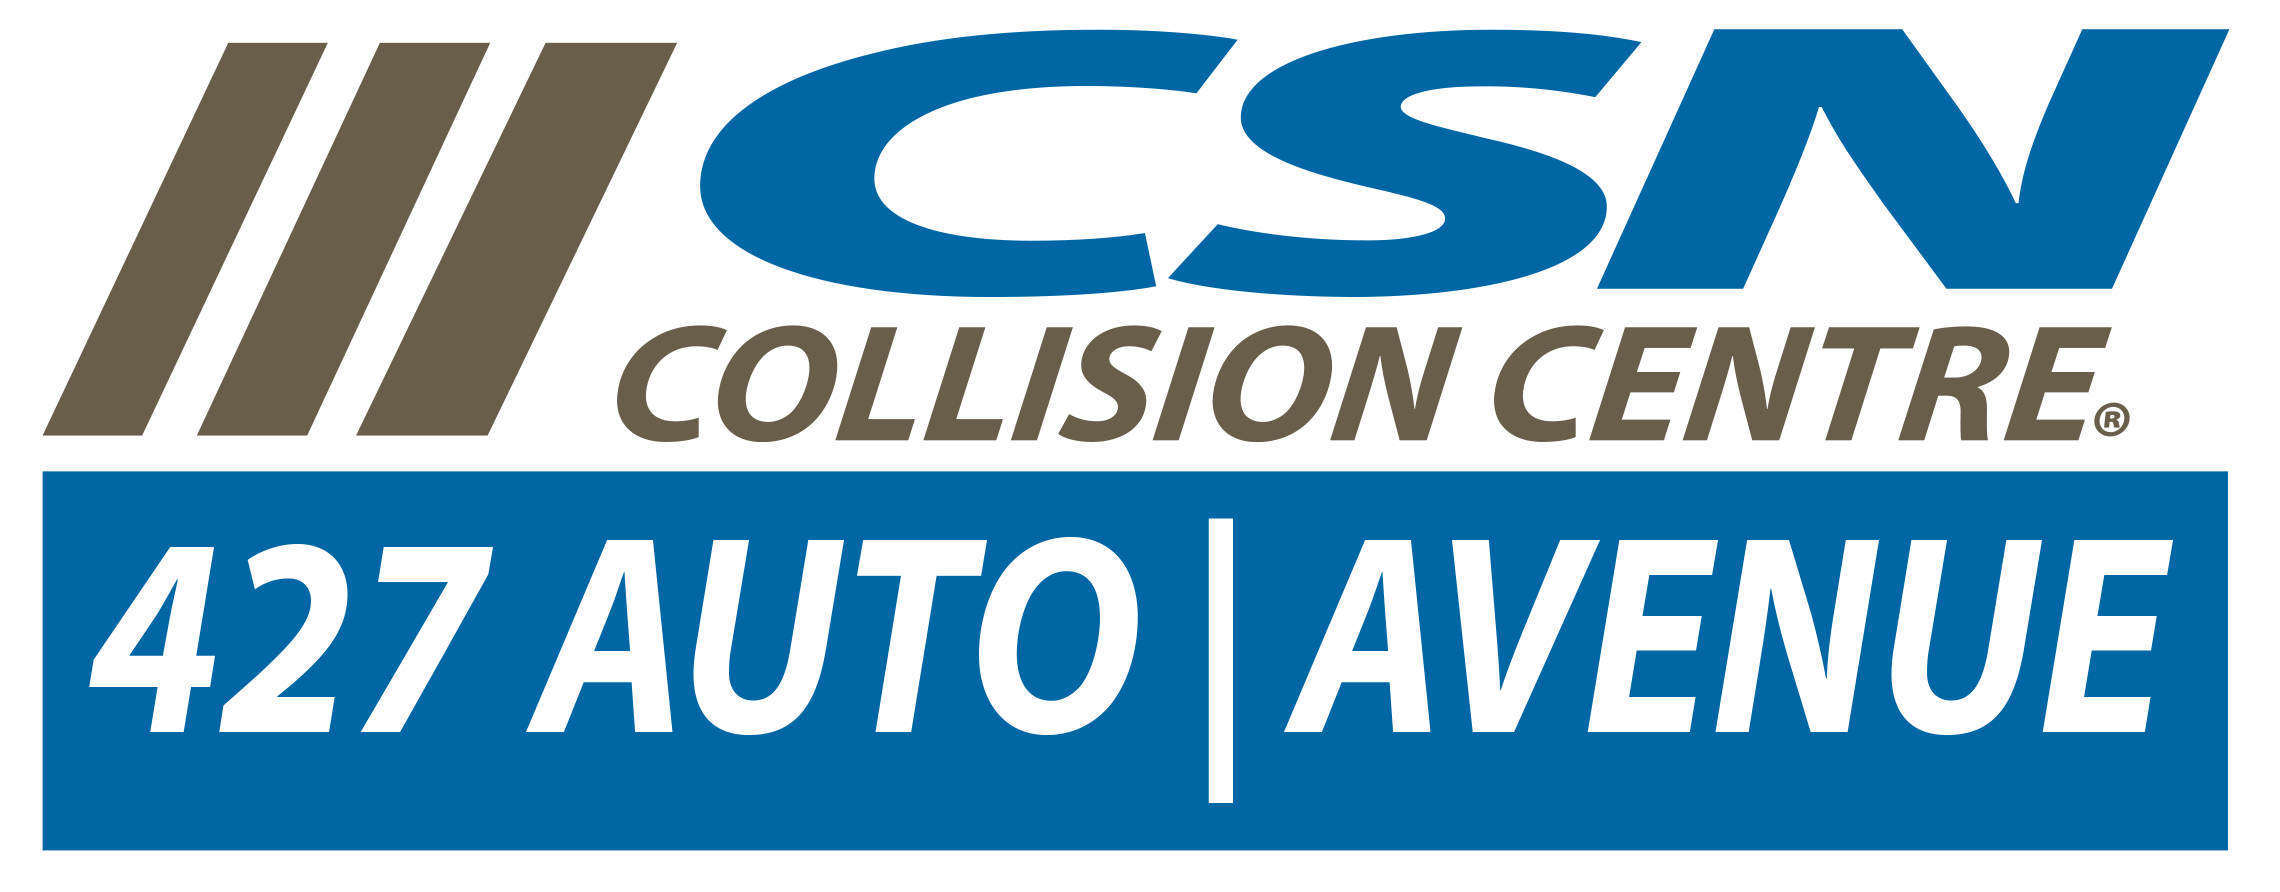 427 Auto Collison Avenue LOGO 2016